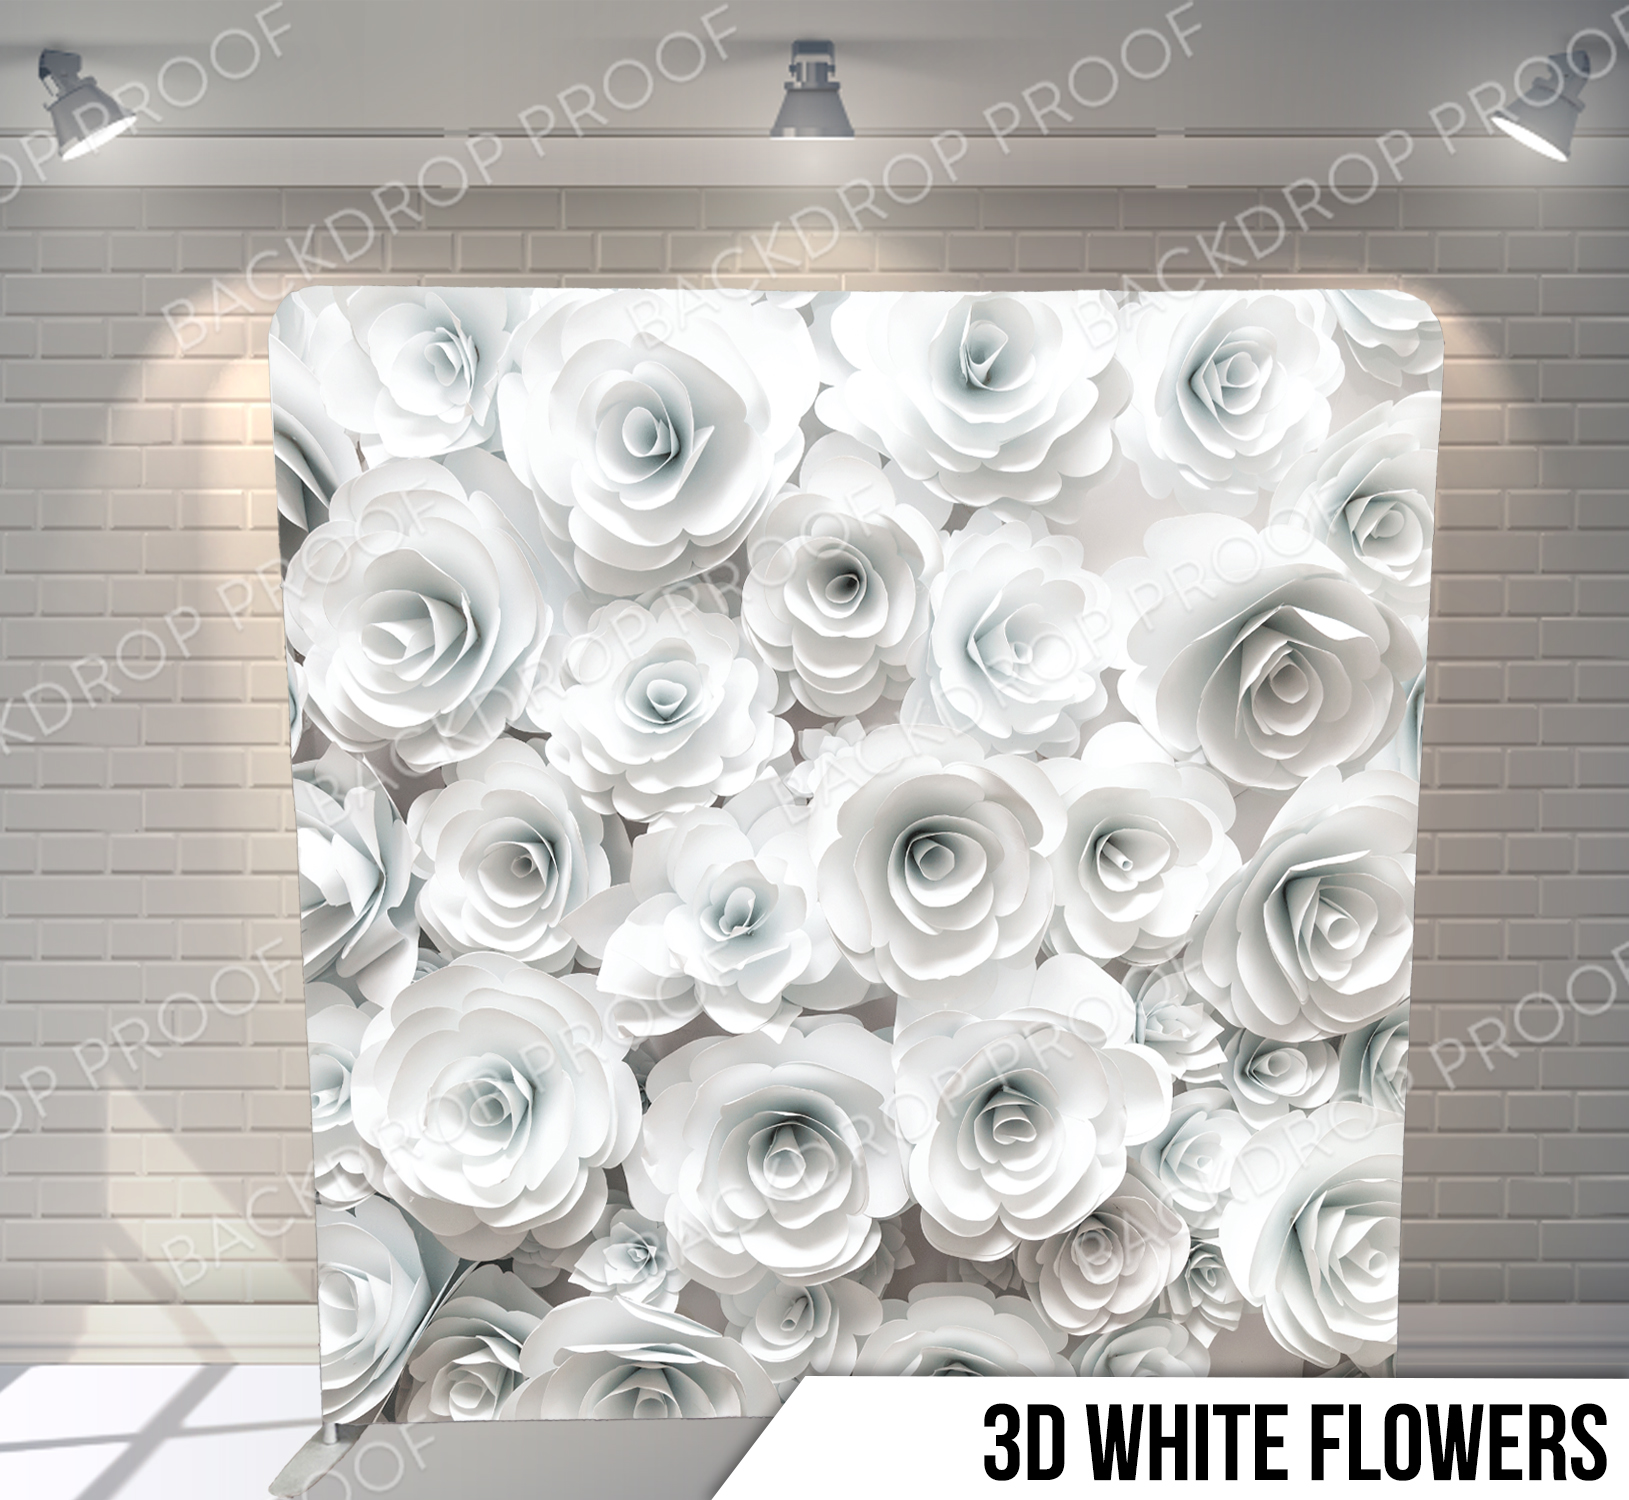 Pillow_3DWhiteFlowers_G - Copy.jpg